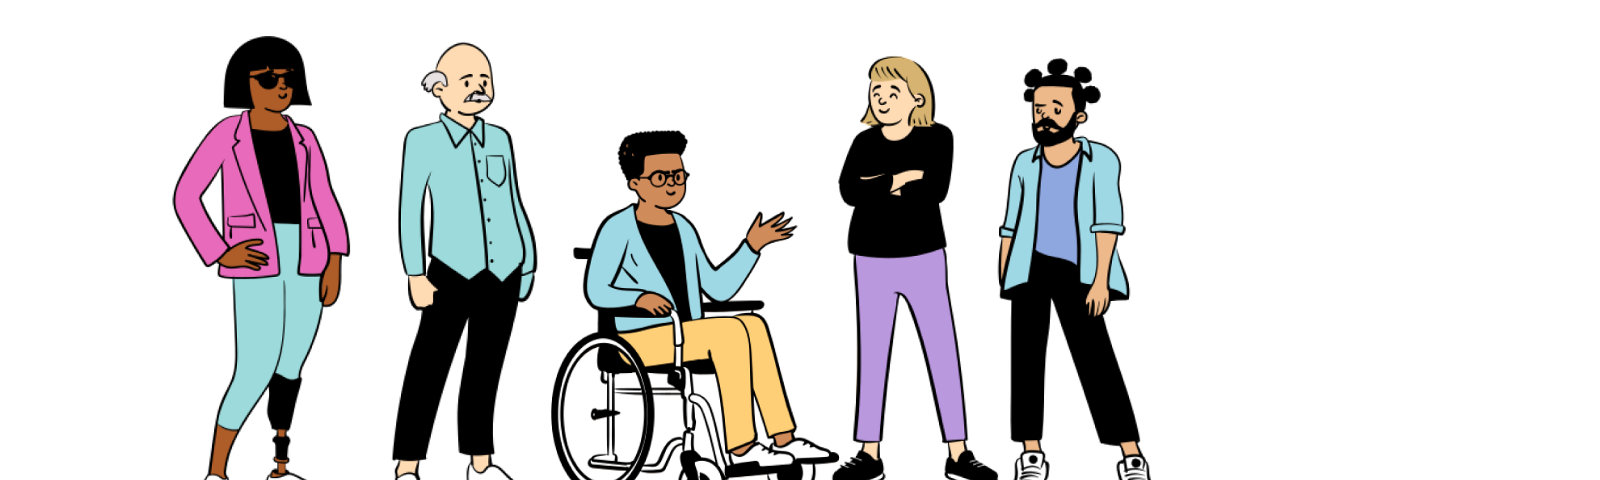 A cartoon image of 5 people standing together.